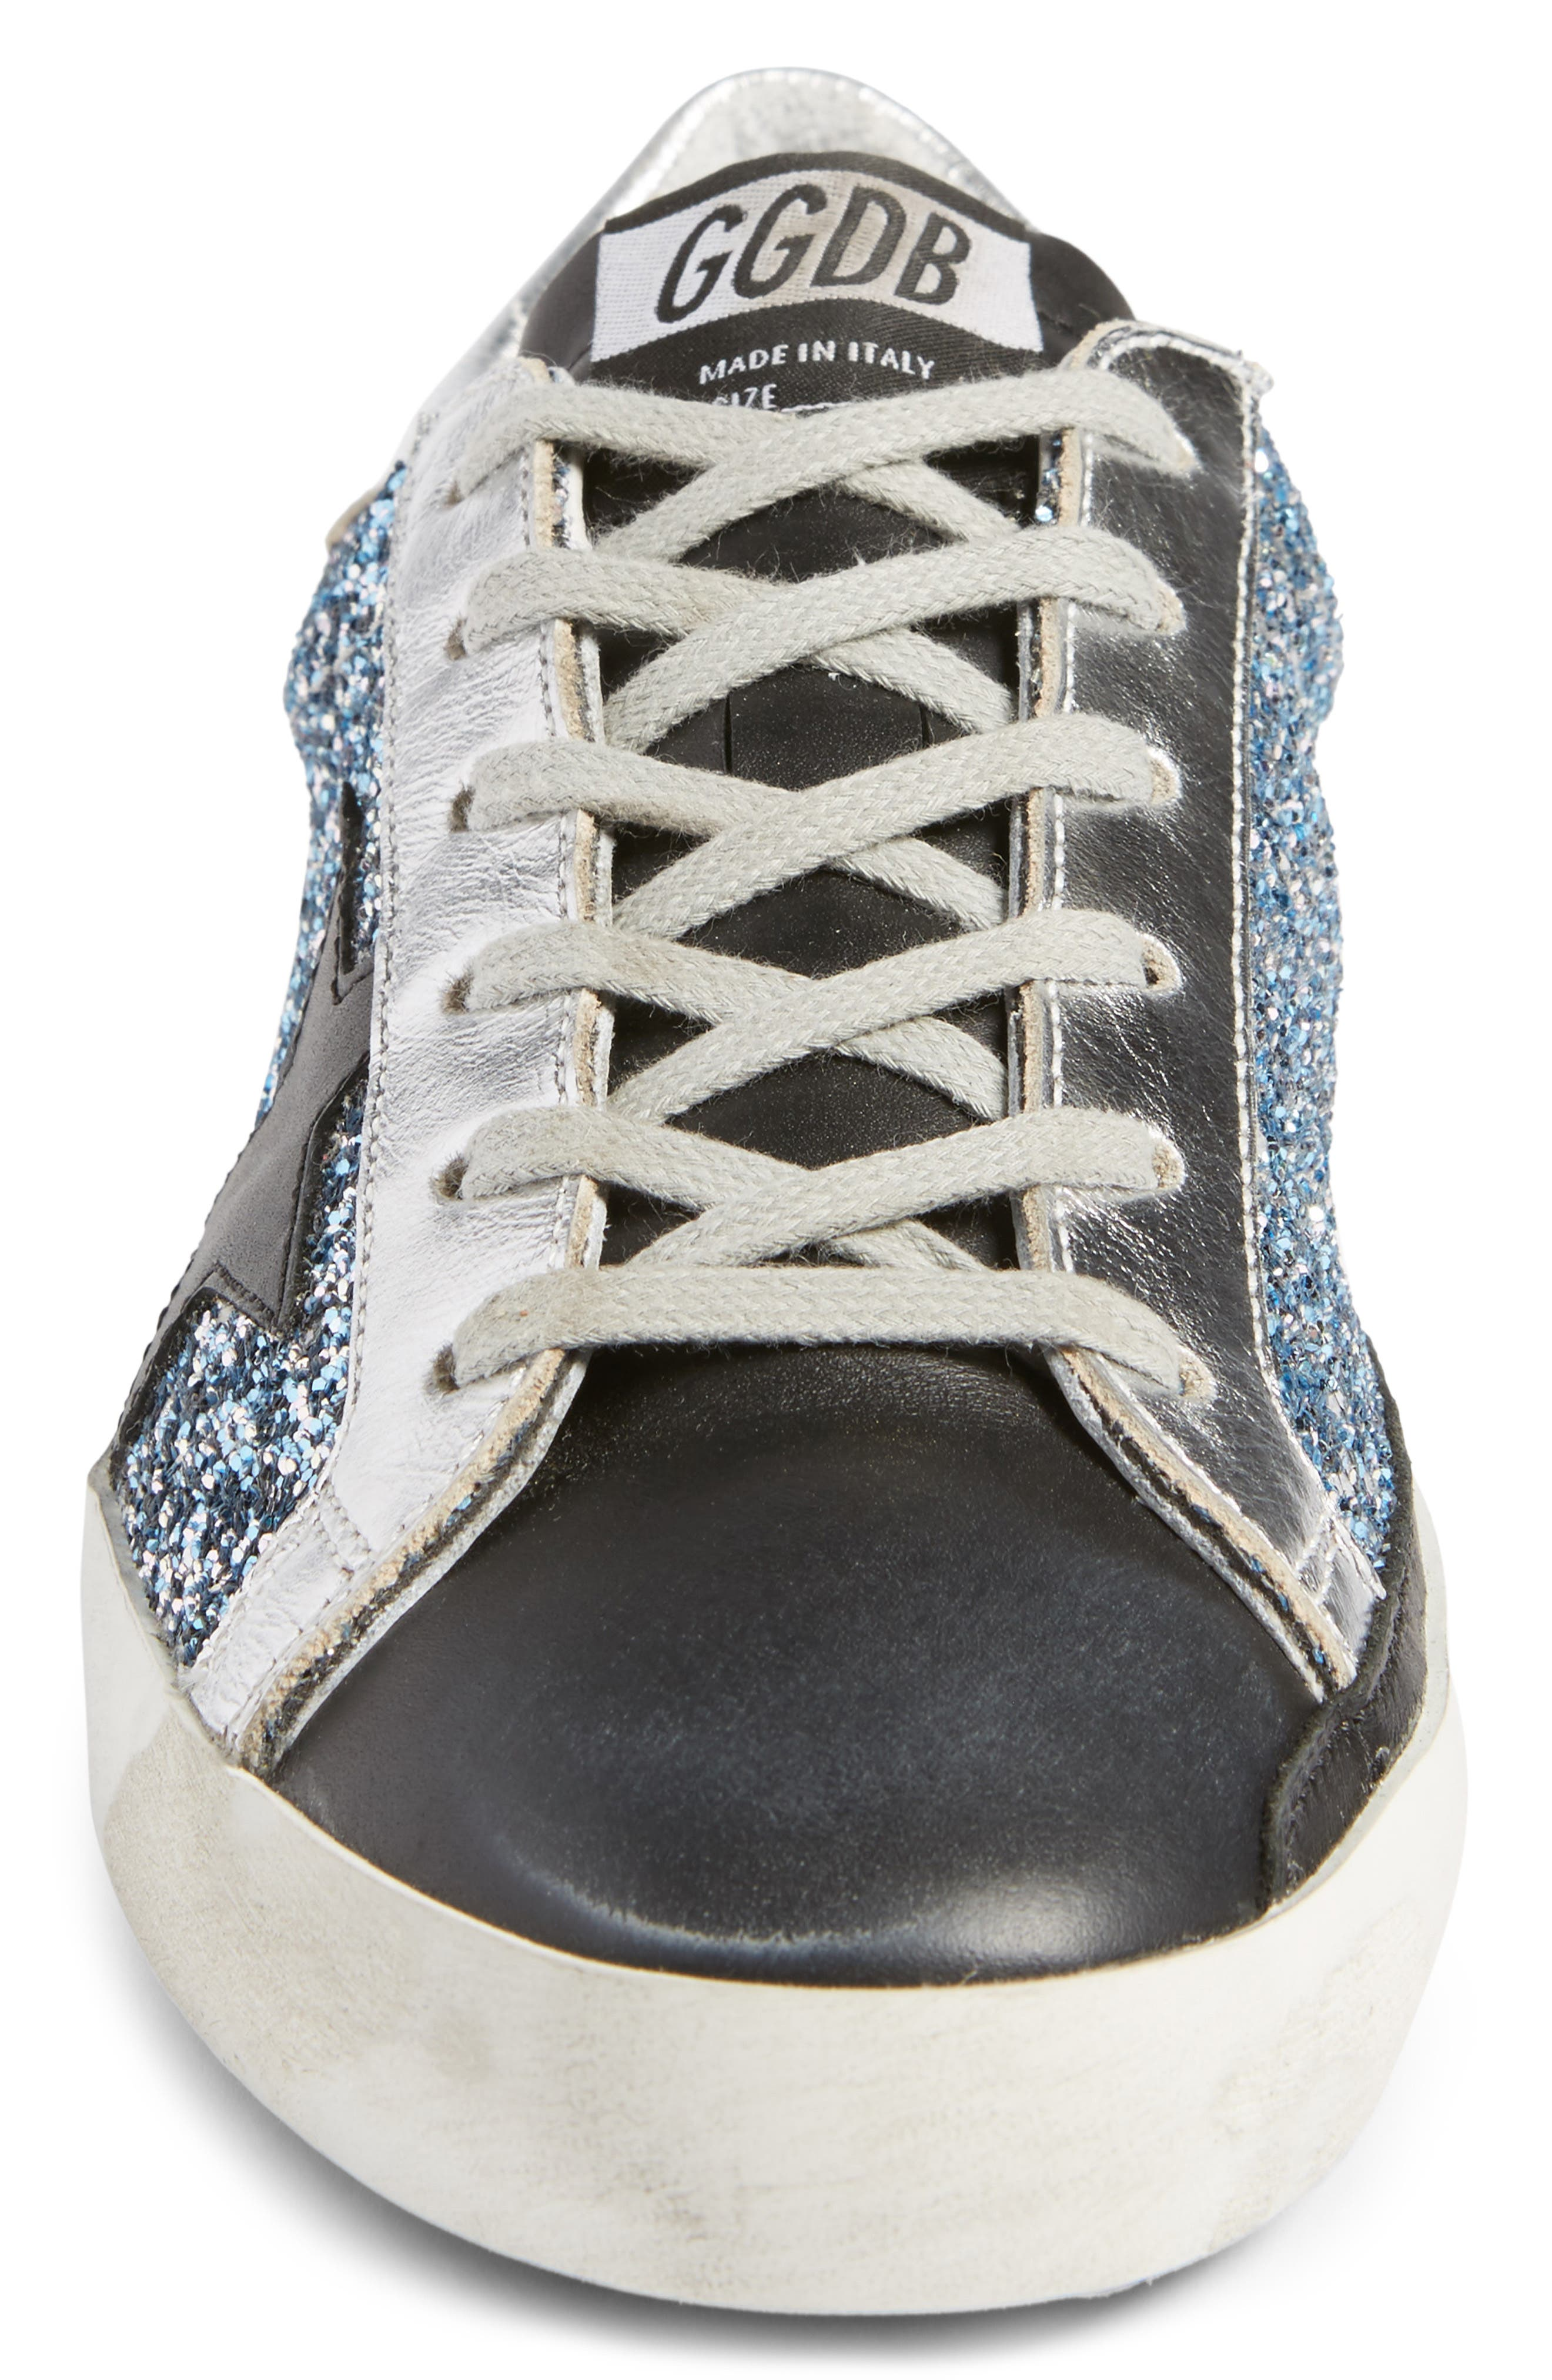 Superstar Glitter Sneaker,                             Alternate thumbnail 4, color,                             Blue Glitter